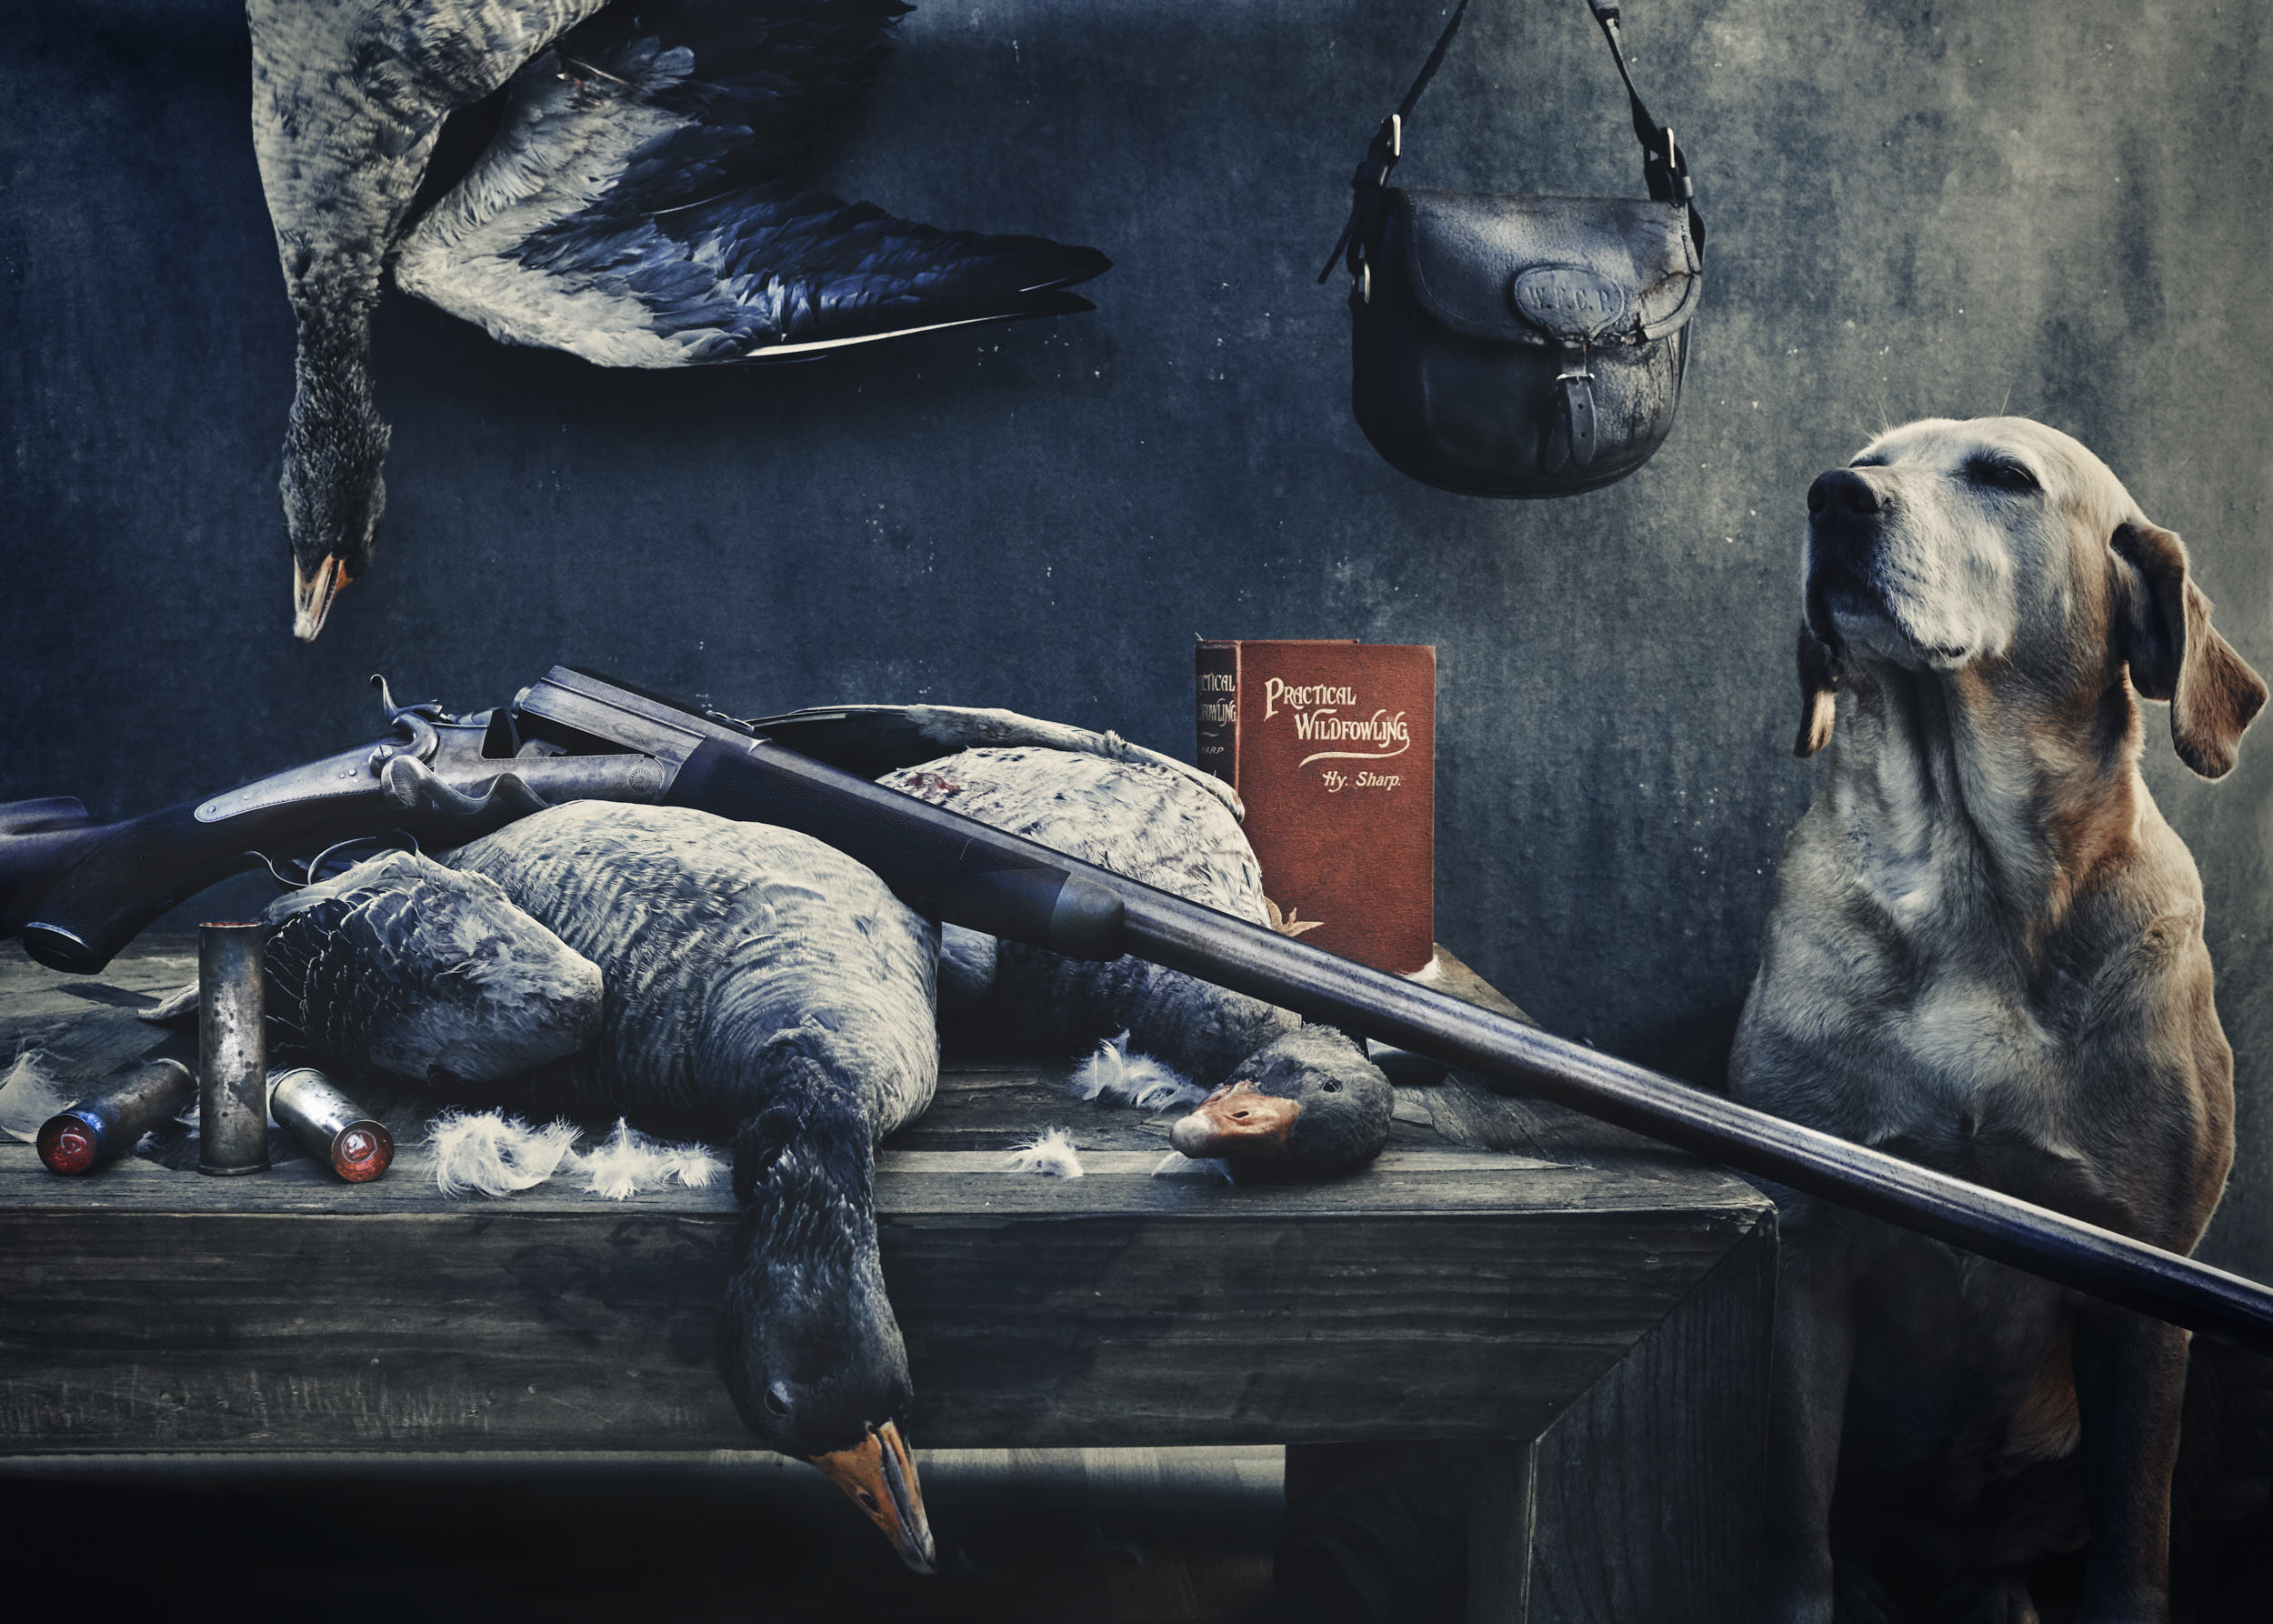 Fresh wildfowl, a shotgun and a dog photographed by Matthew Lloyd in the style of old paintings